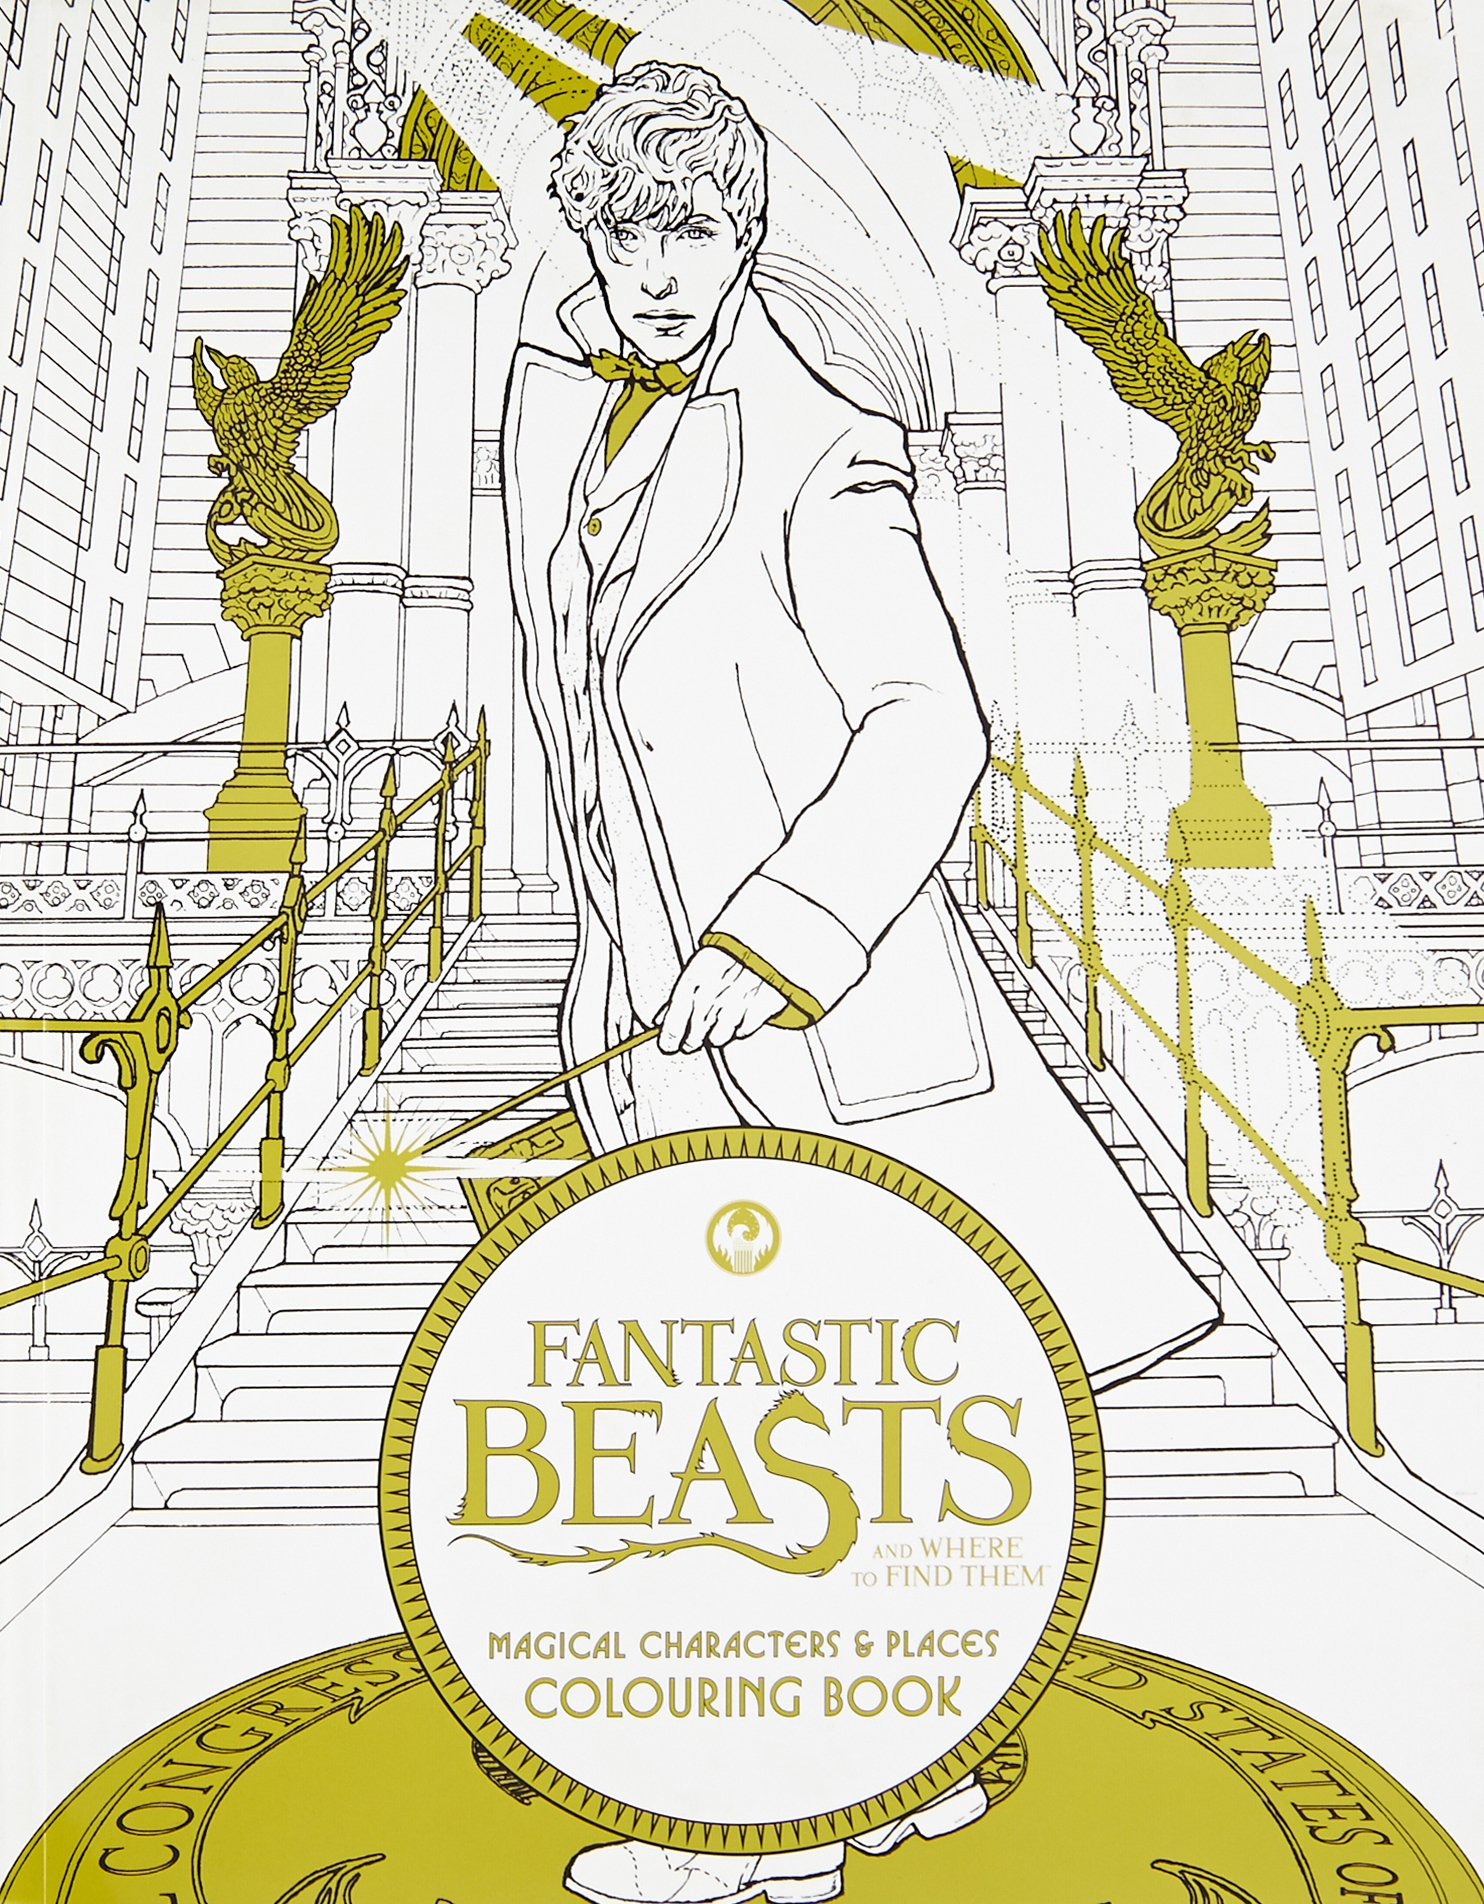 Fantastic Beasts And Where To Find Them Magical Characters Places Colouring Book Bks Amazoncouk HarperCollins